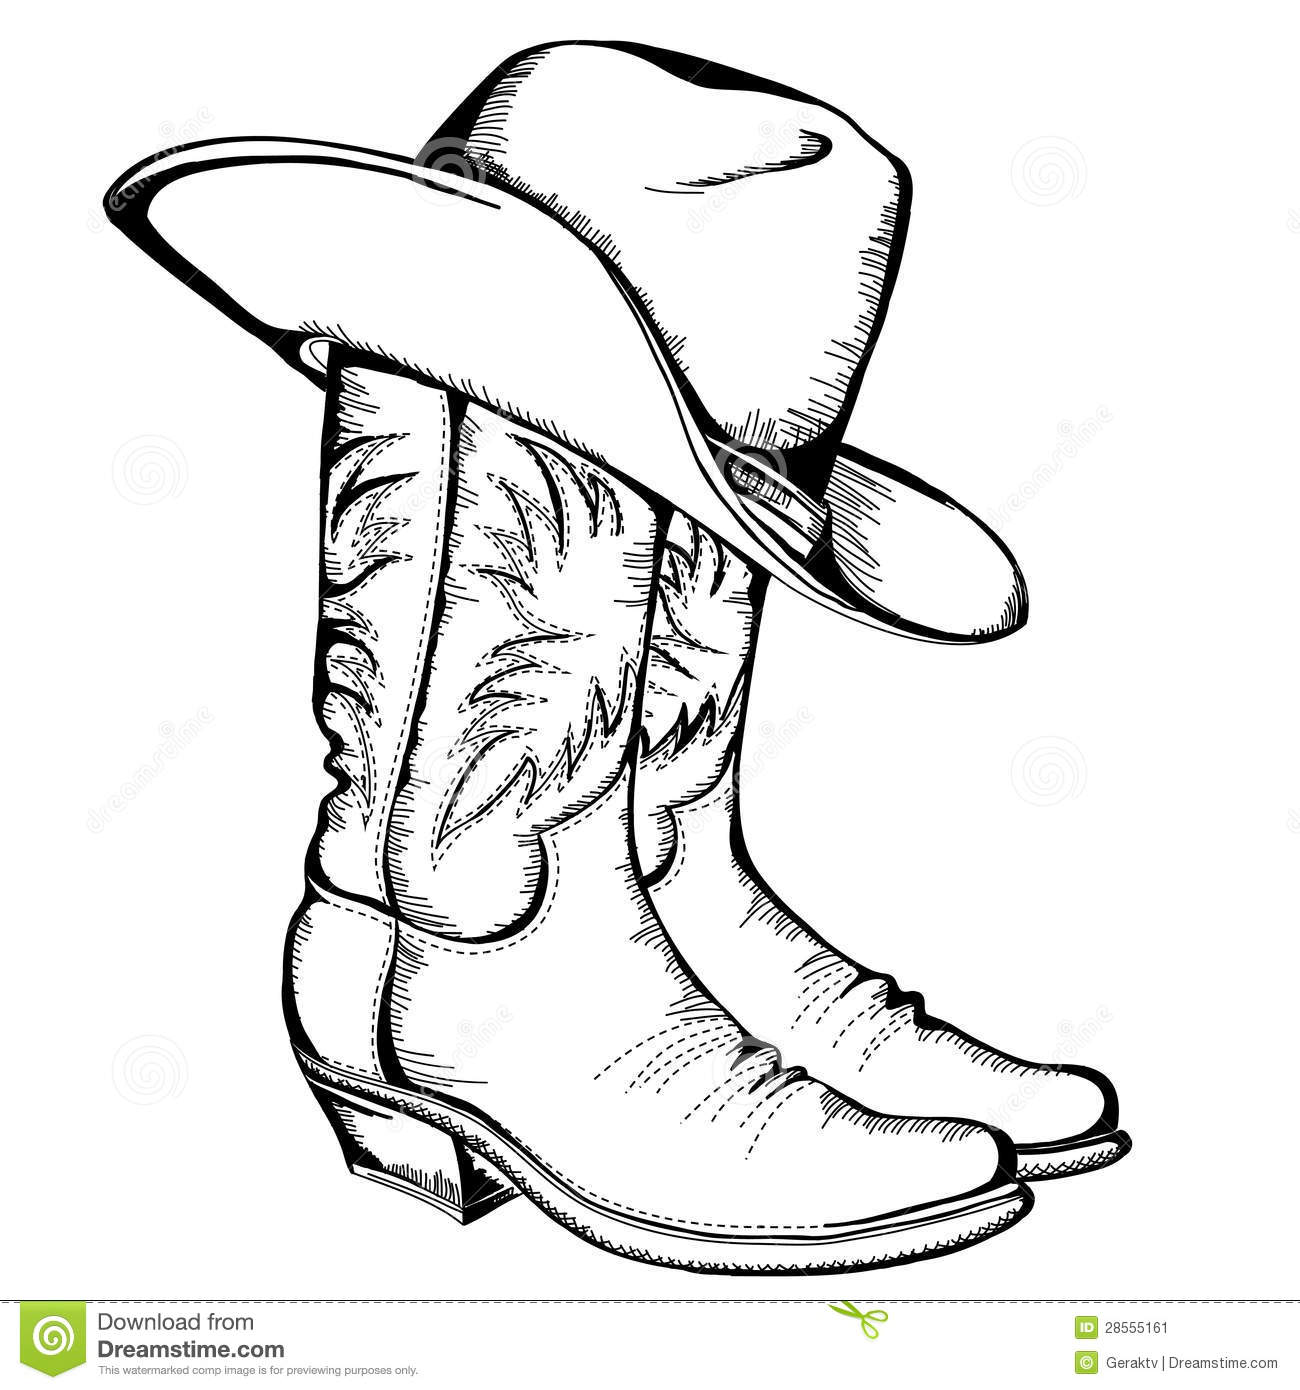 Printable coloring pictures of cowboy boots - Boots Cowboy